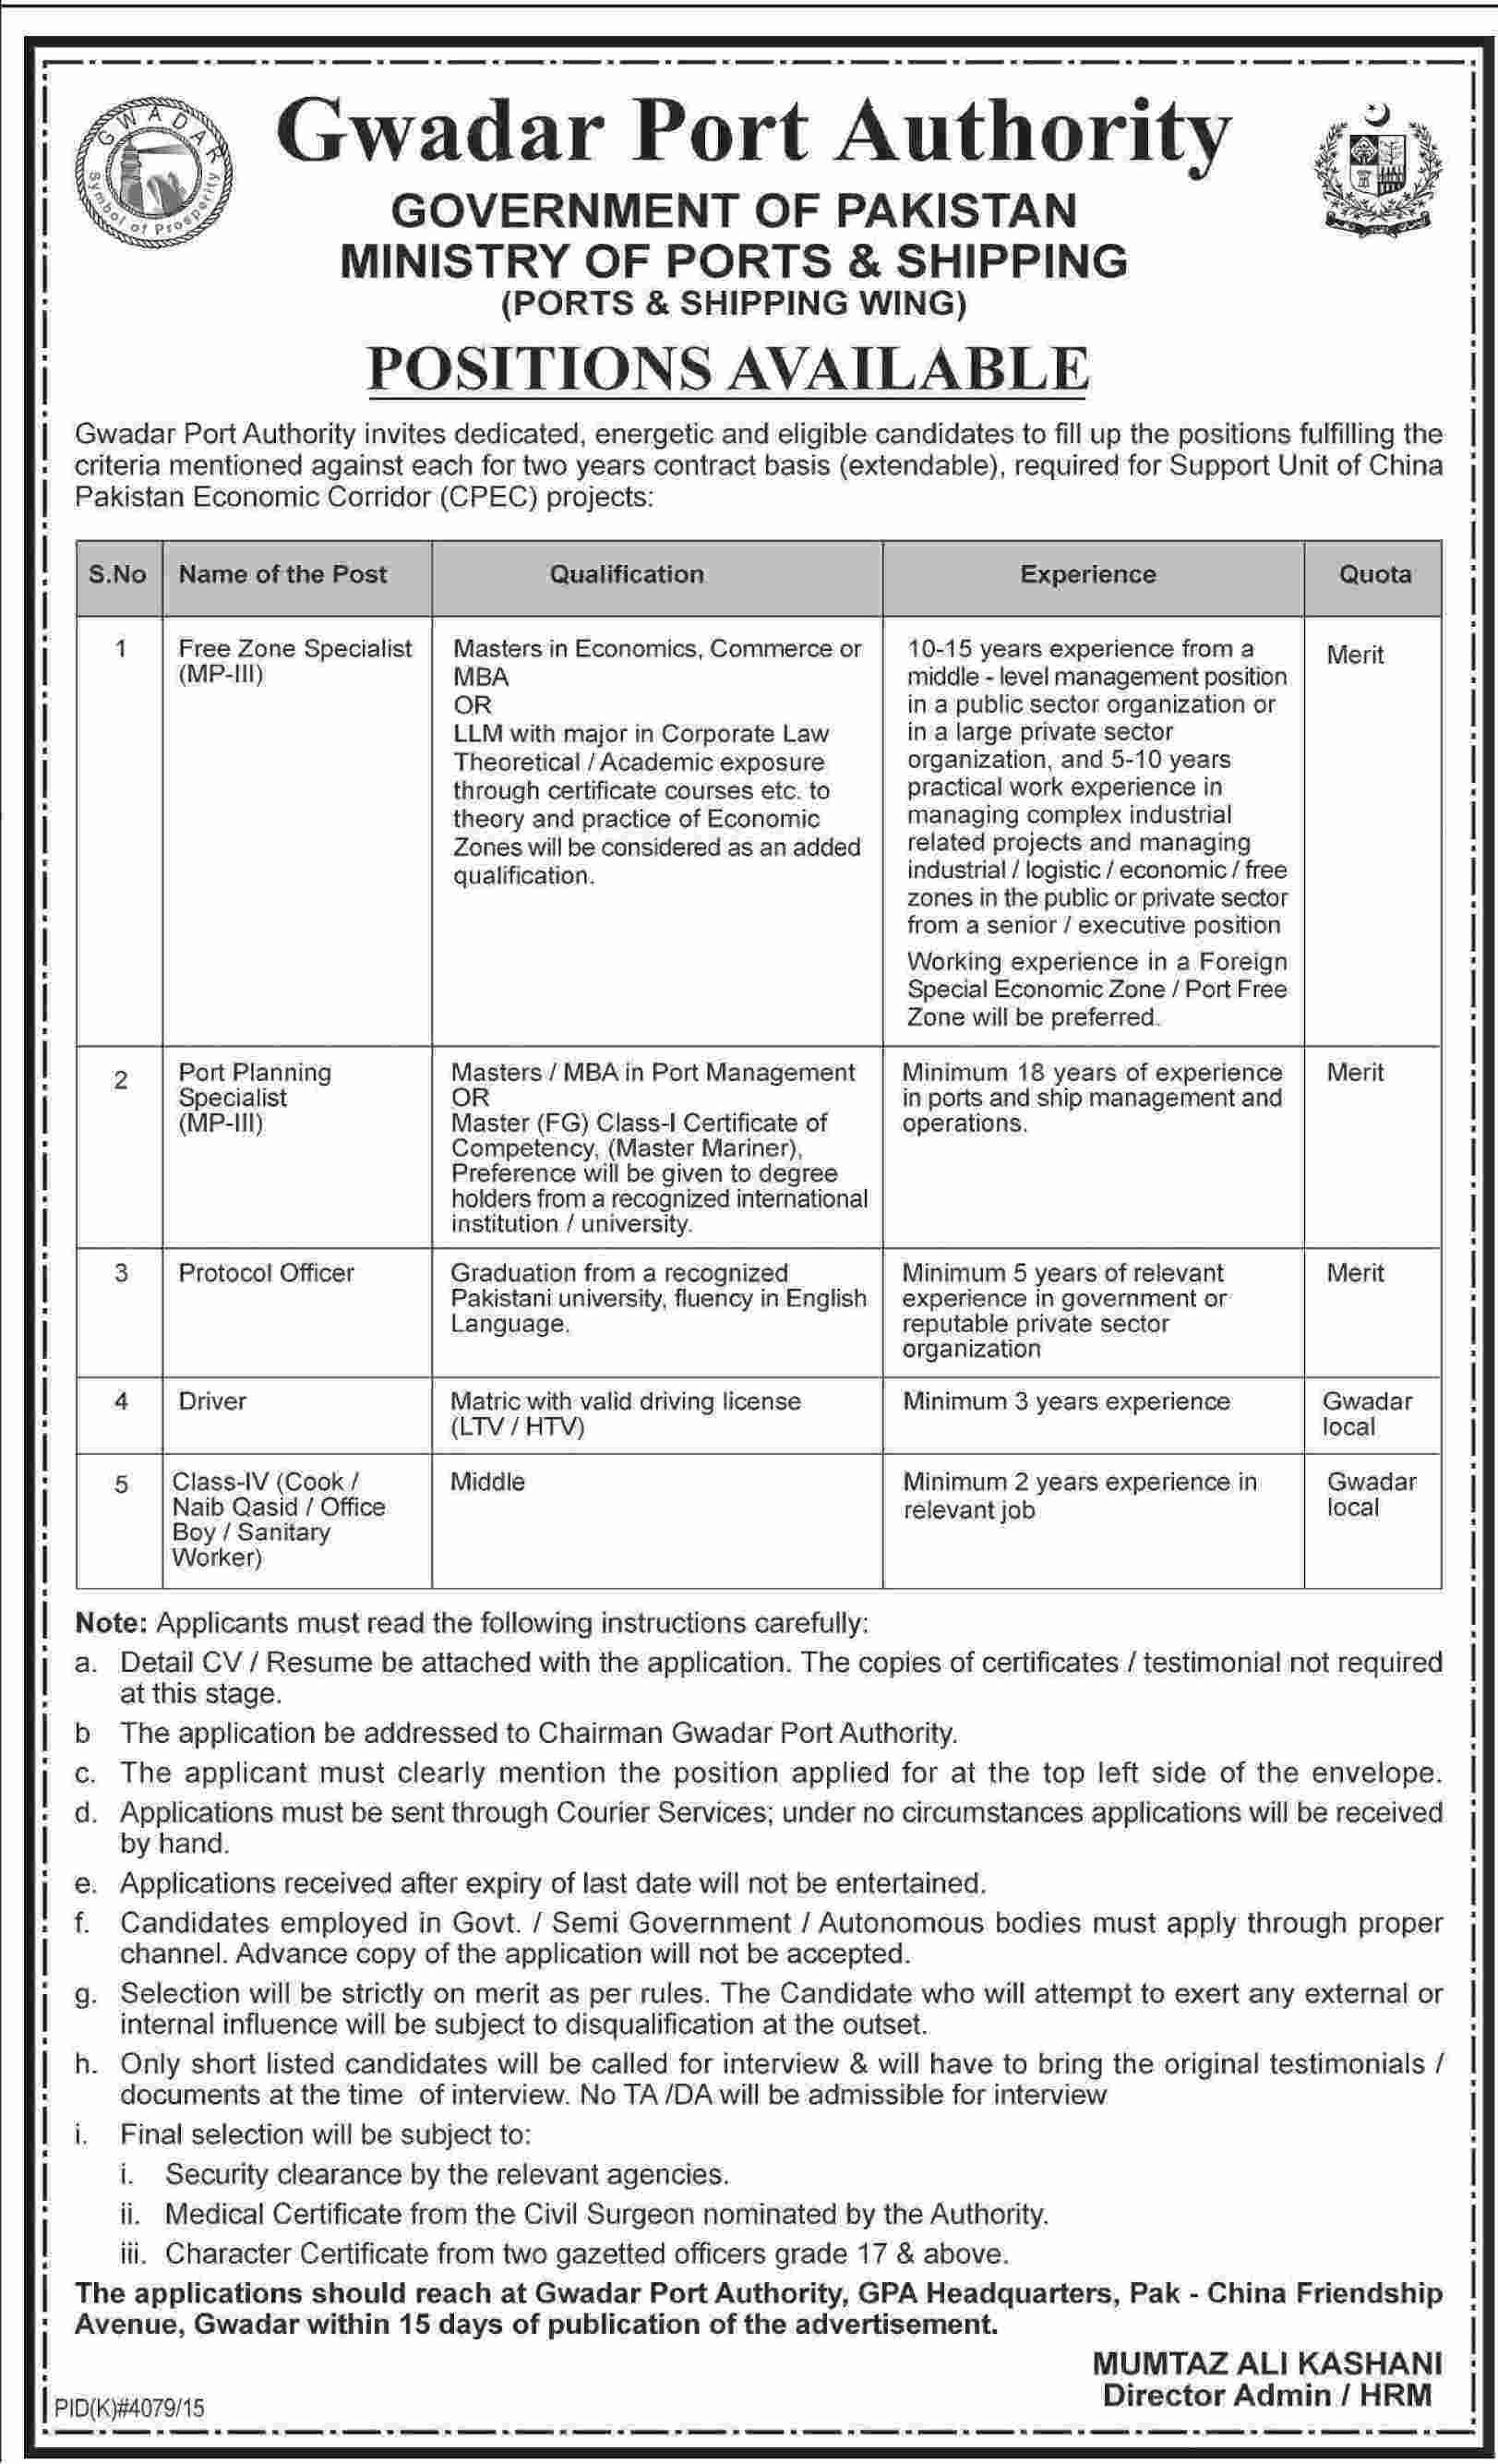 Gawadar Port Authority Ministry of Shipping and Ports Jobs 2016